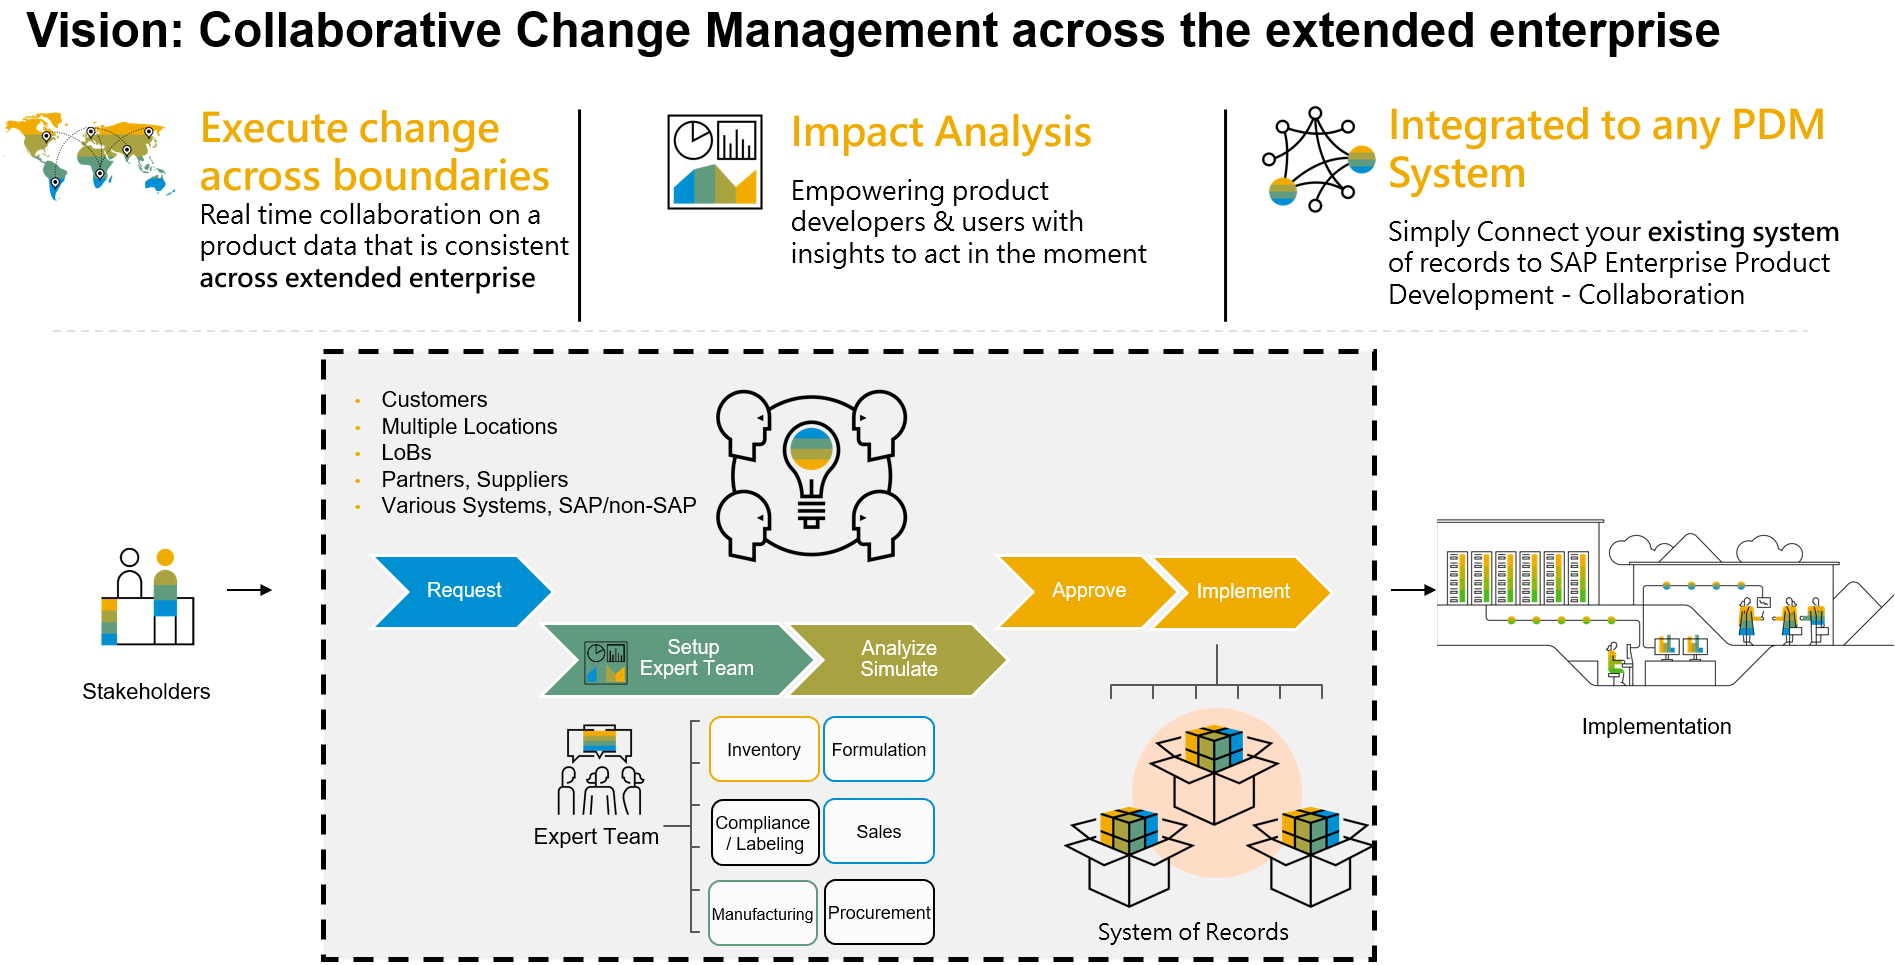 Change%20Evaluation%20in%20Collaborative%20Change%20Management%20across%20the%20extended%20enterprise